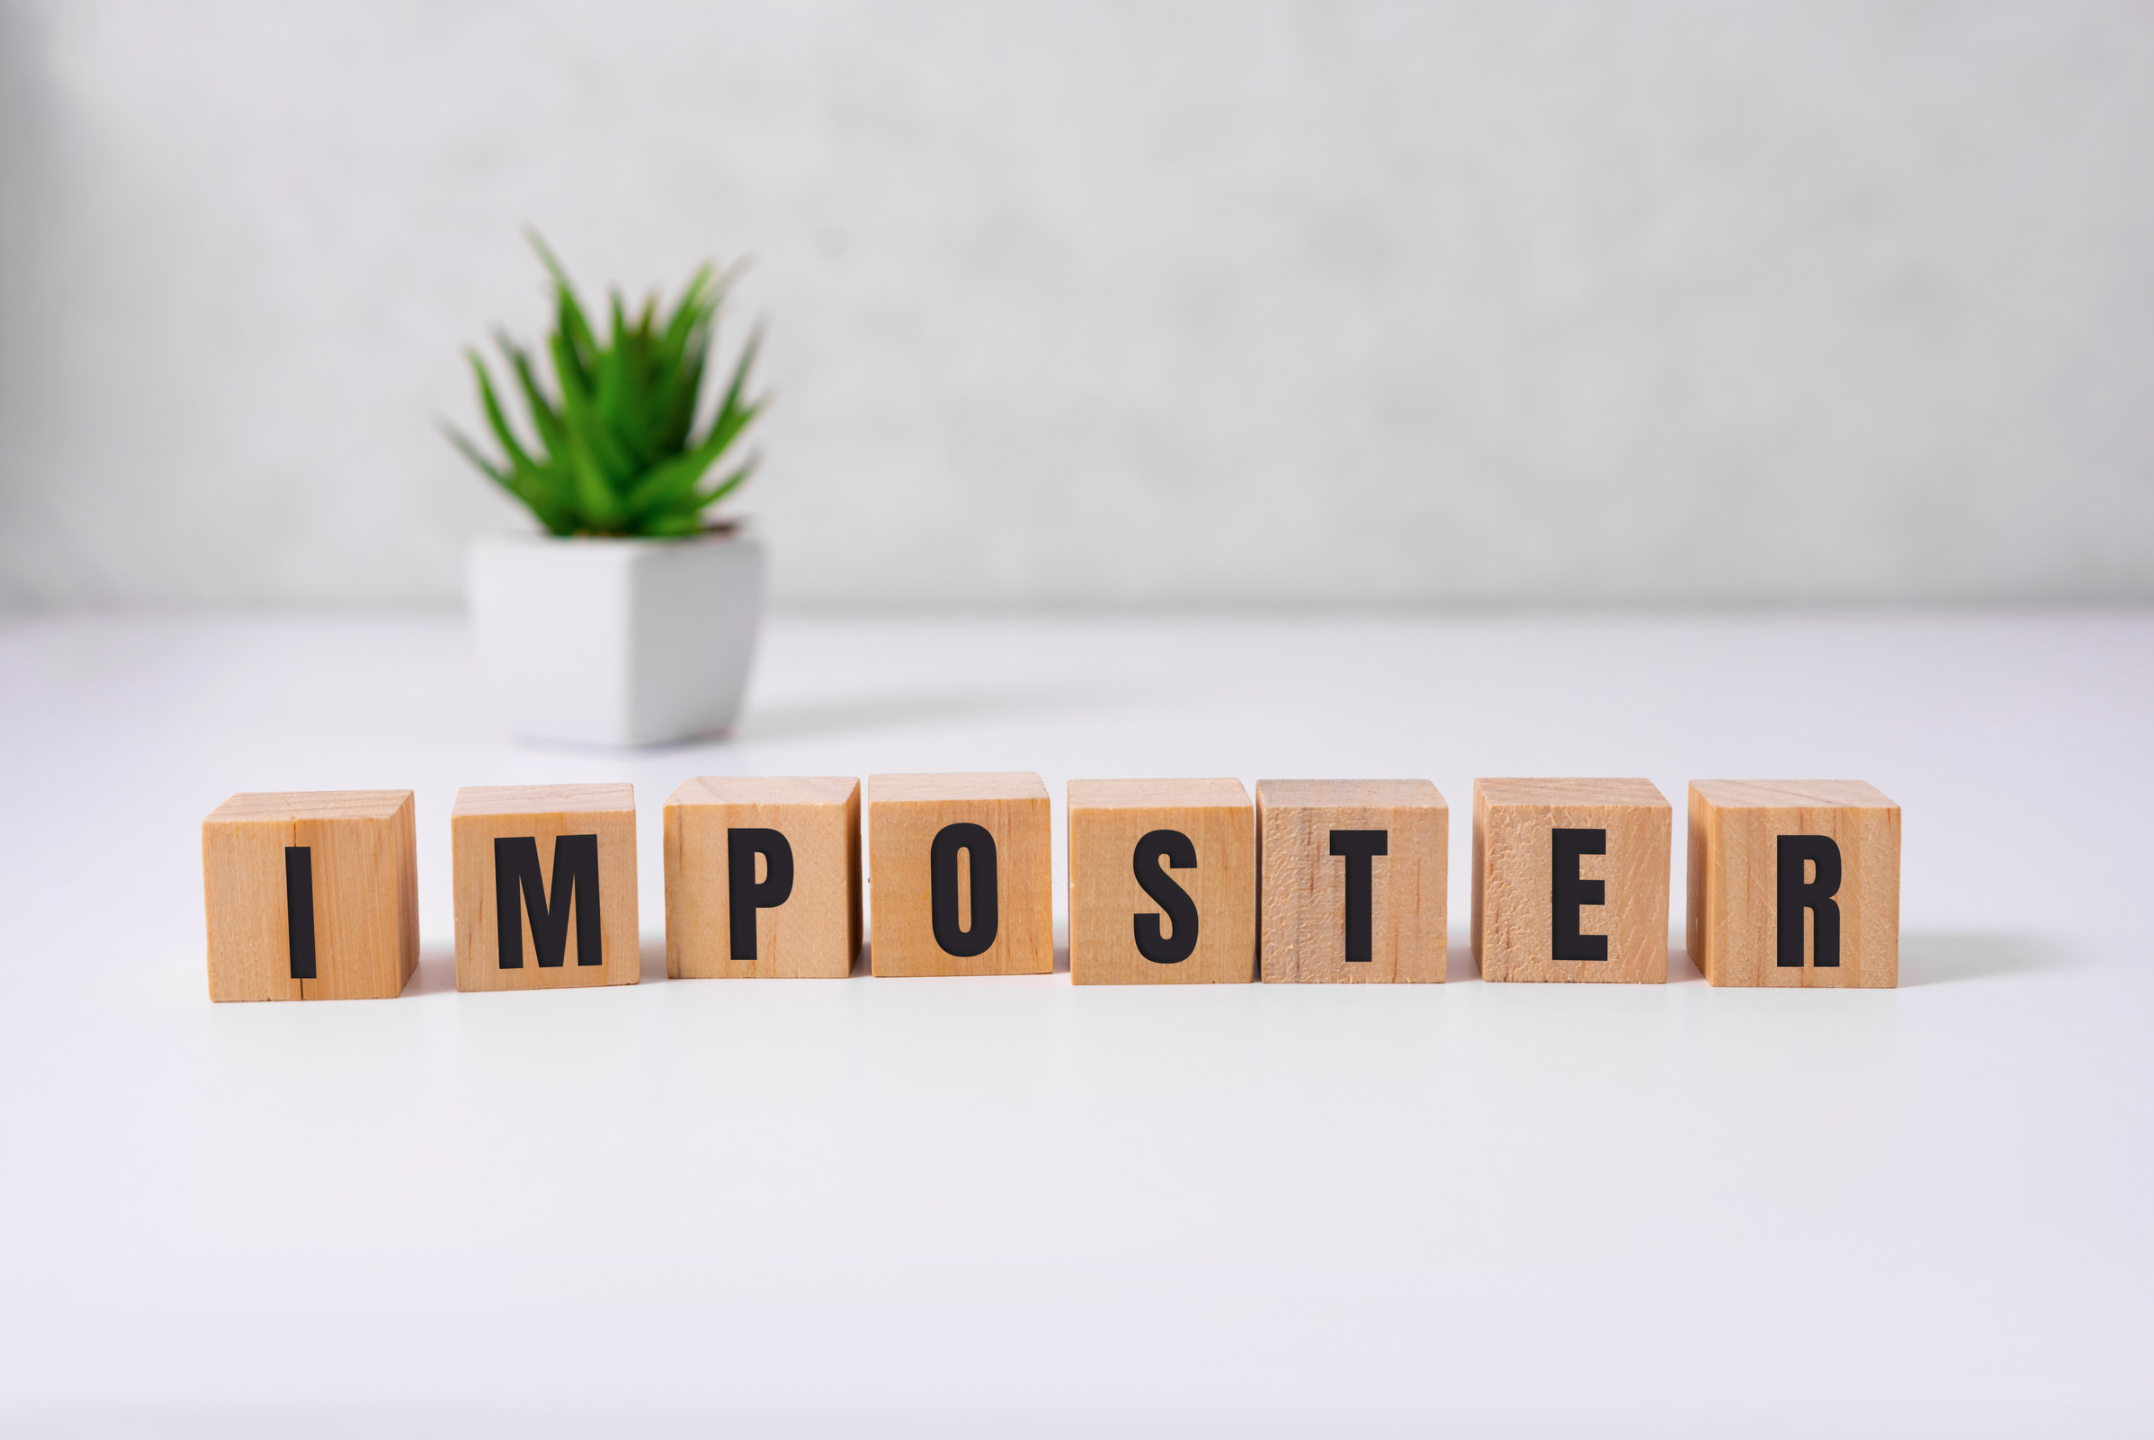 Understanding Imposter Syndrome